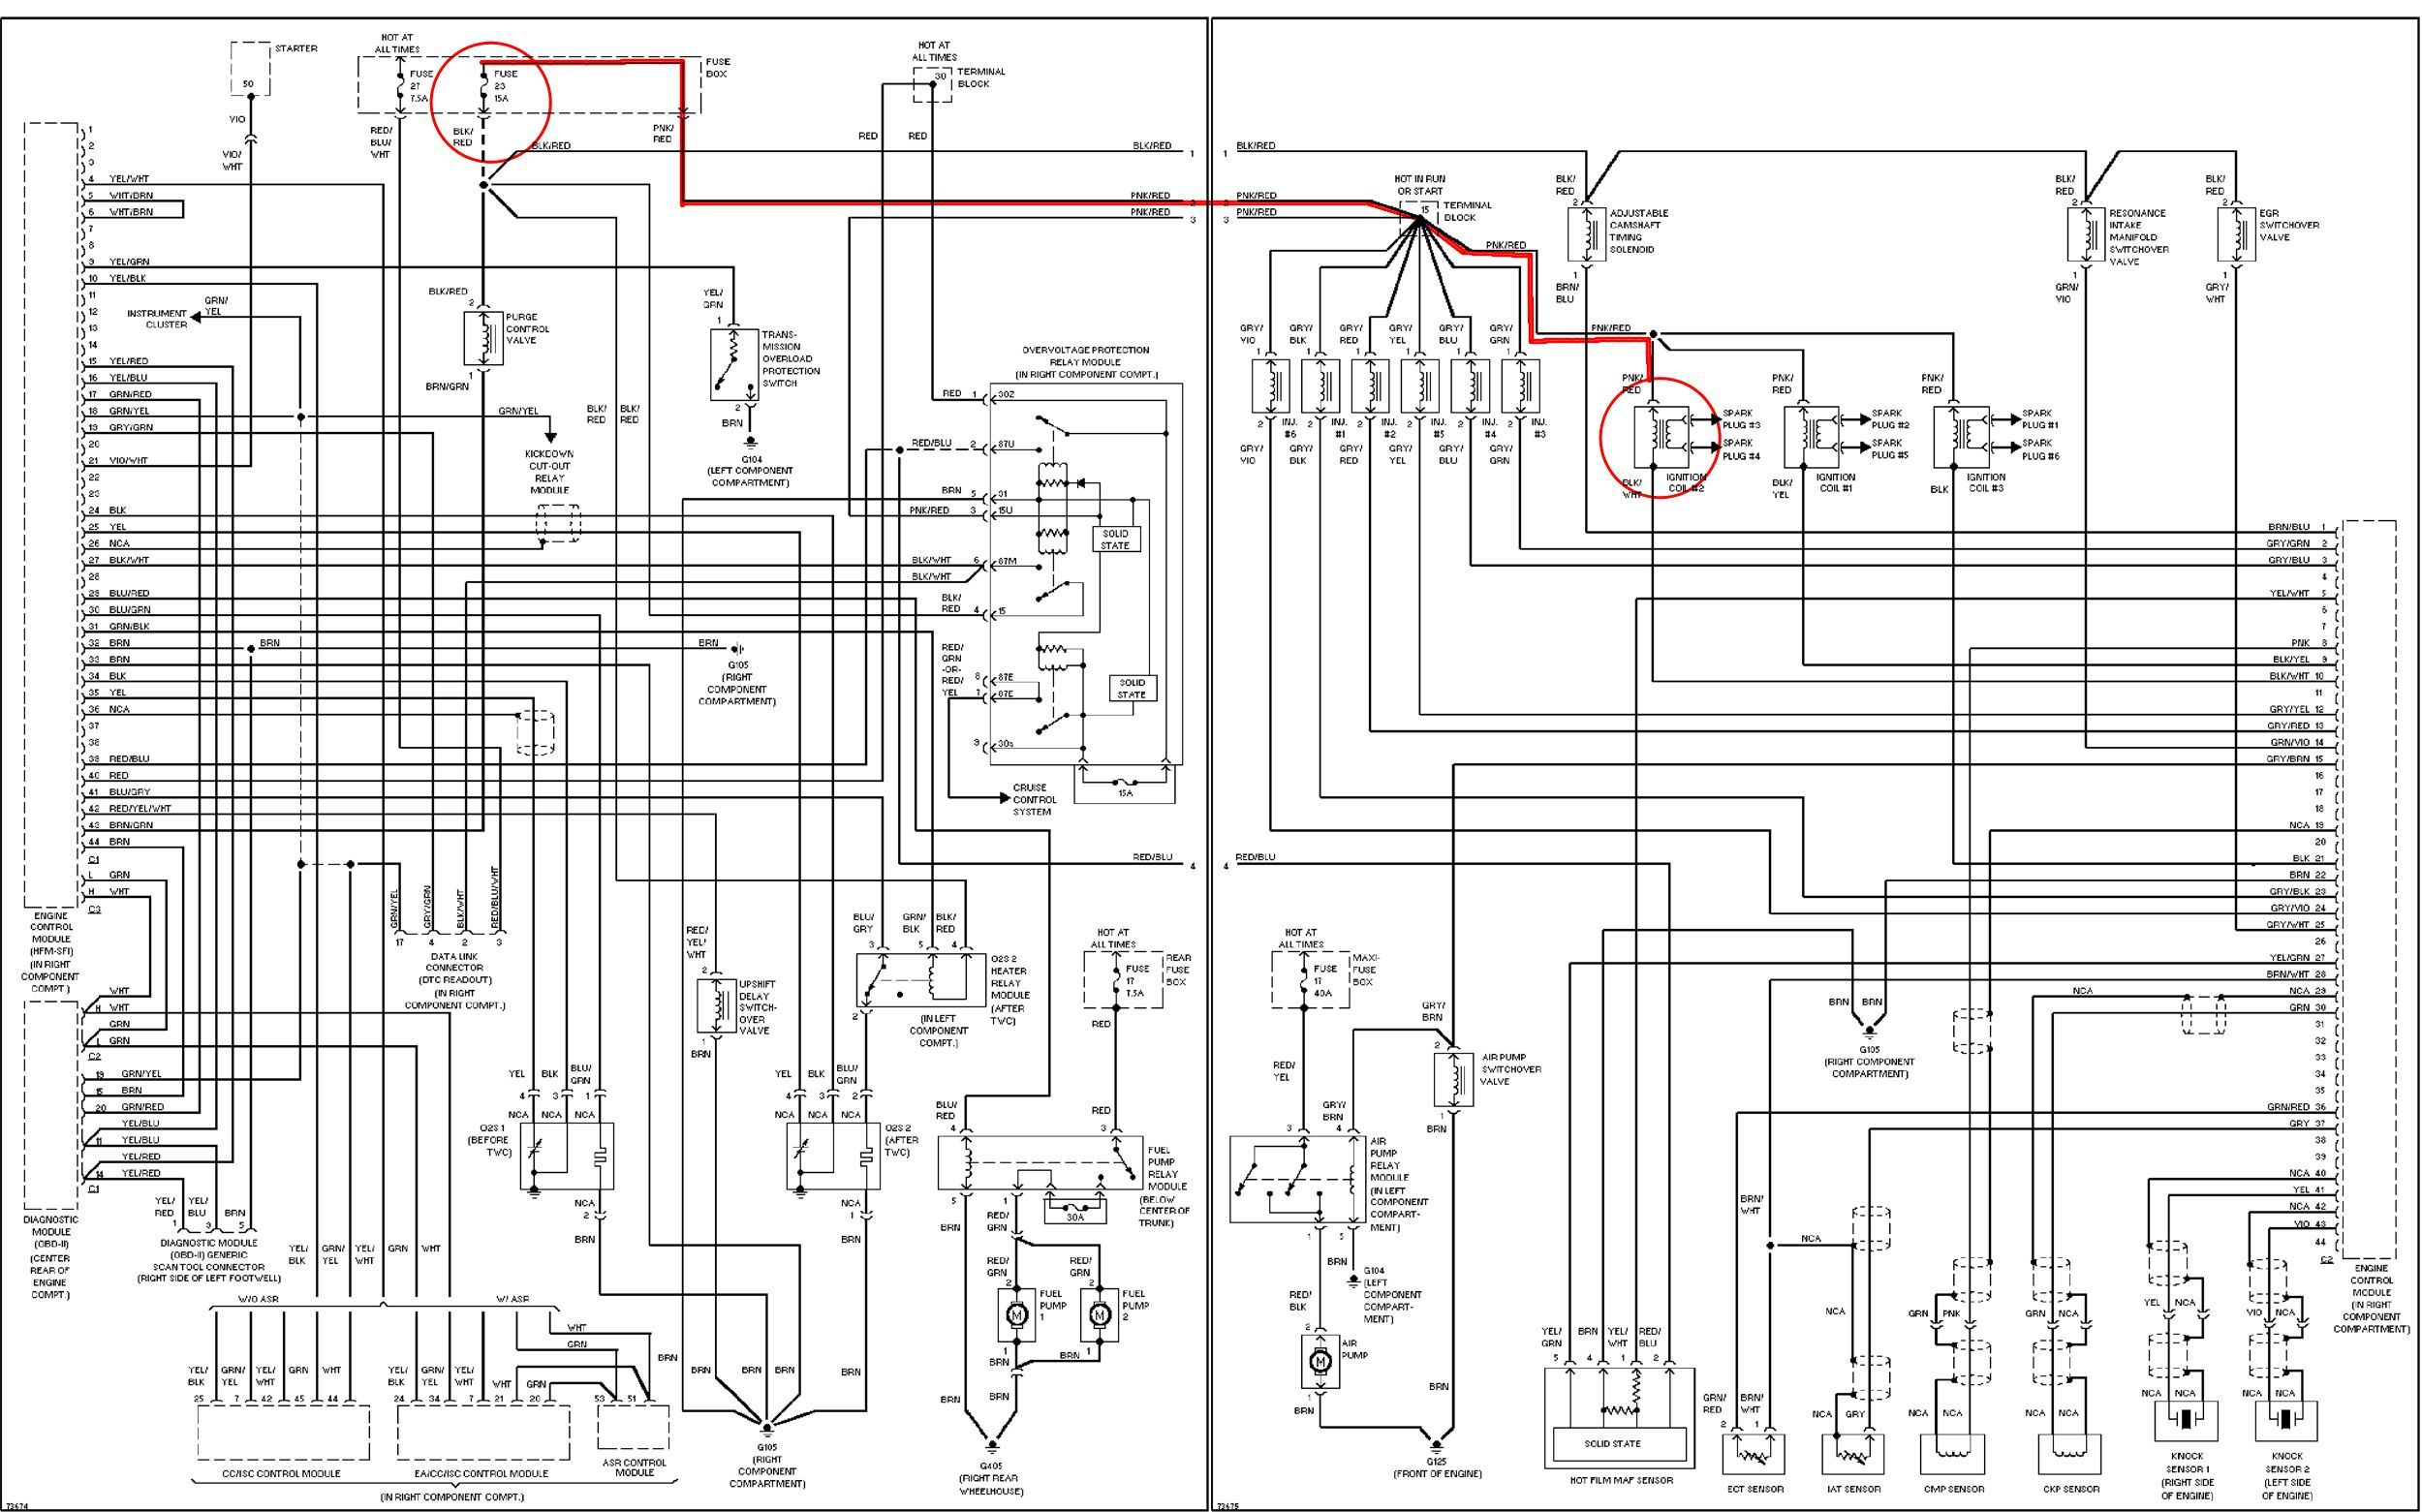 k1blm to mercedes benz wiring diagram [ 2500 x 1561 Pixel ]